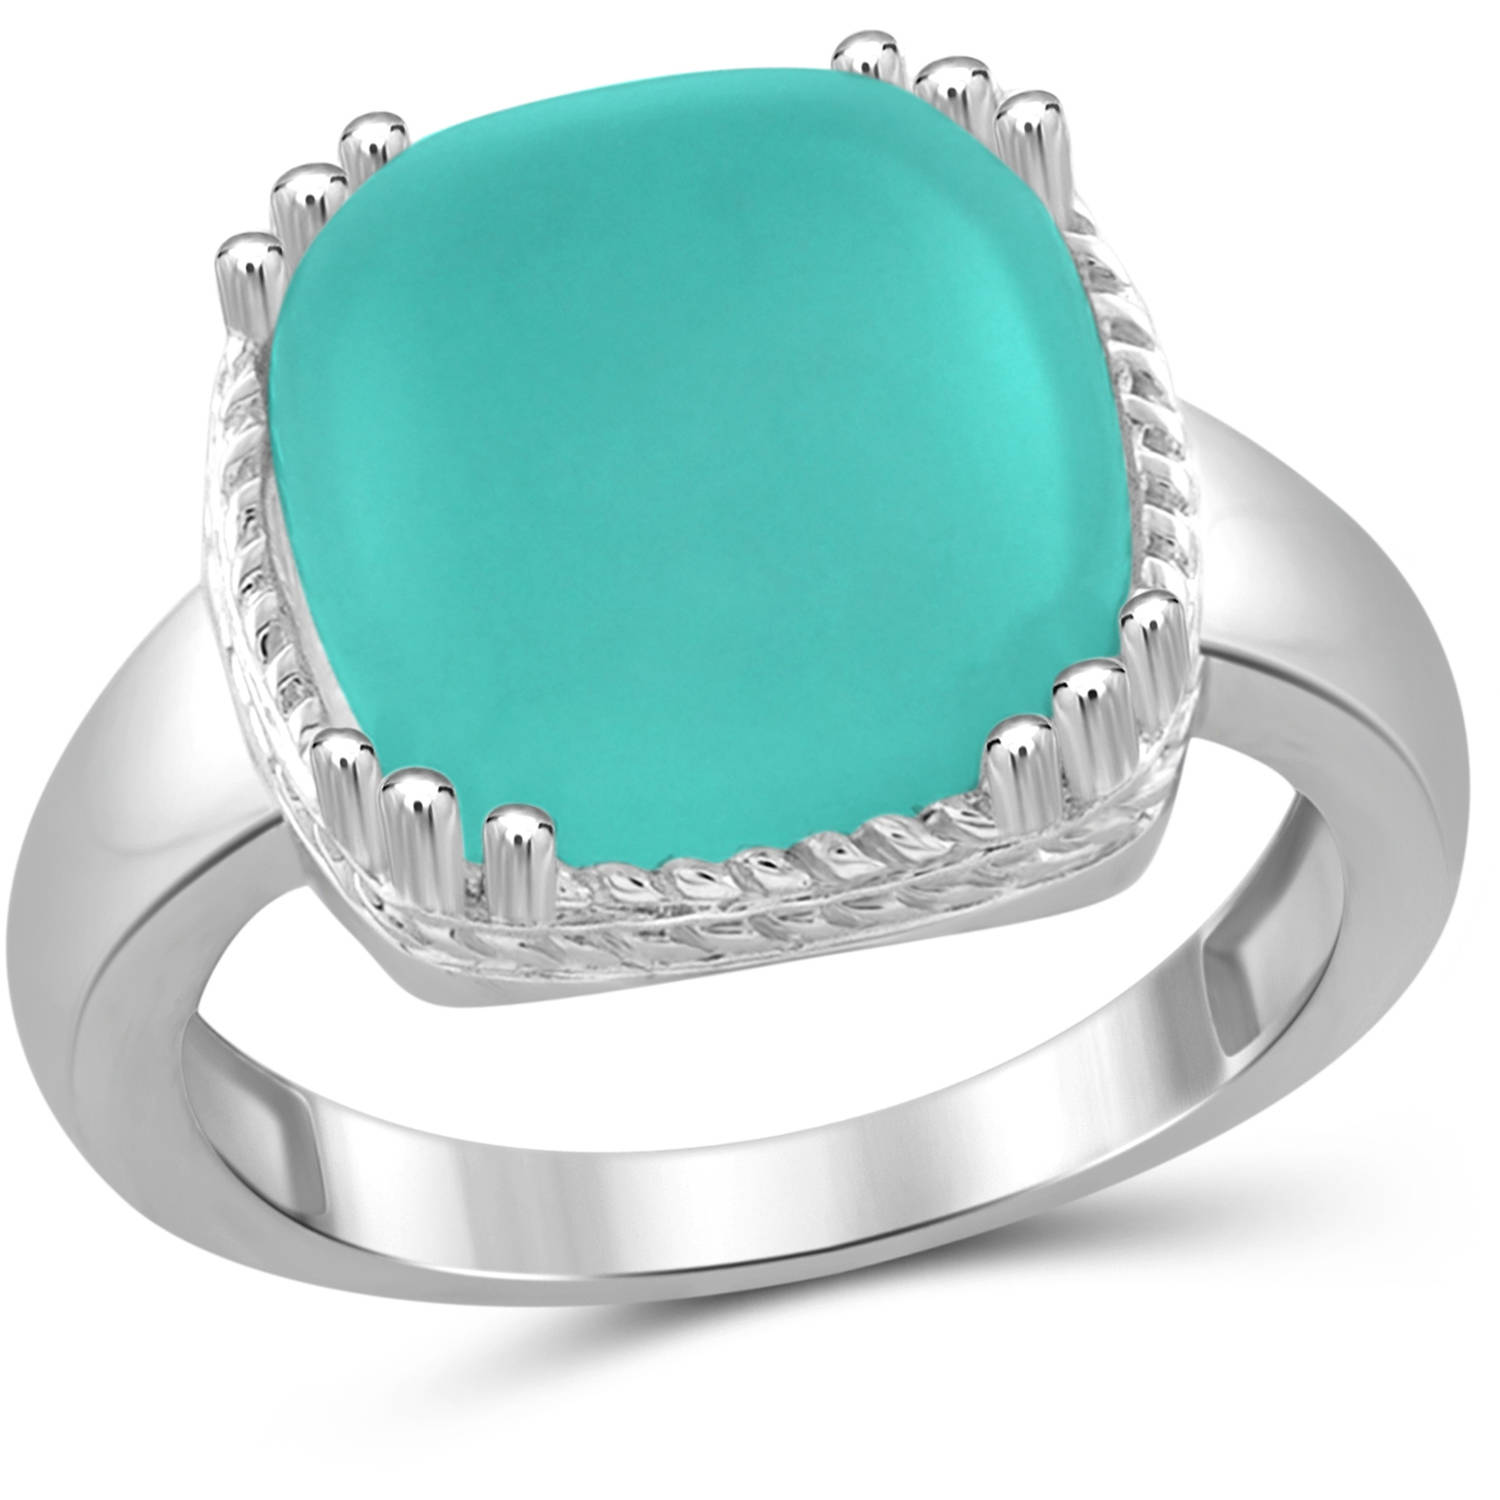 JewelersClub 6-3 4 Carat T.G.W. Chalcedony Sterling Silver Fashion Ring by JewelersClub